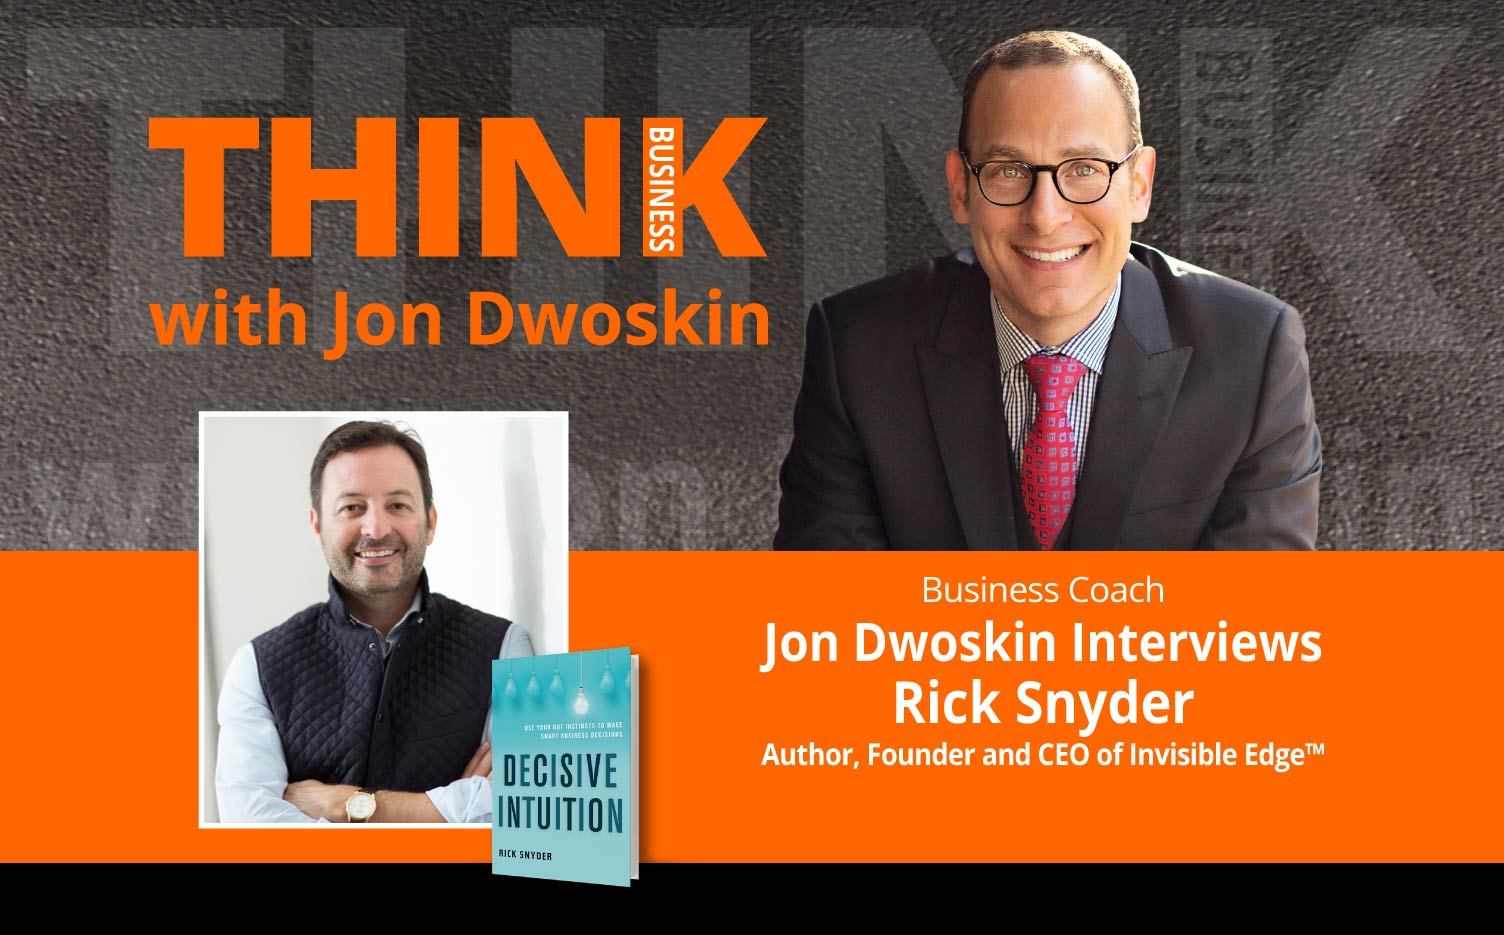 THINK Business Podcast: Jon Dwoskin Interviews Rick Snyder, Author, Founder and CEO of Invisible Edge™